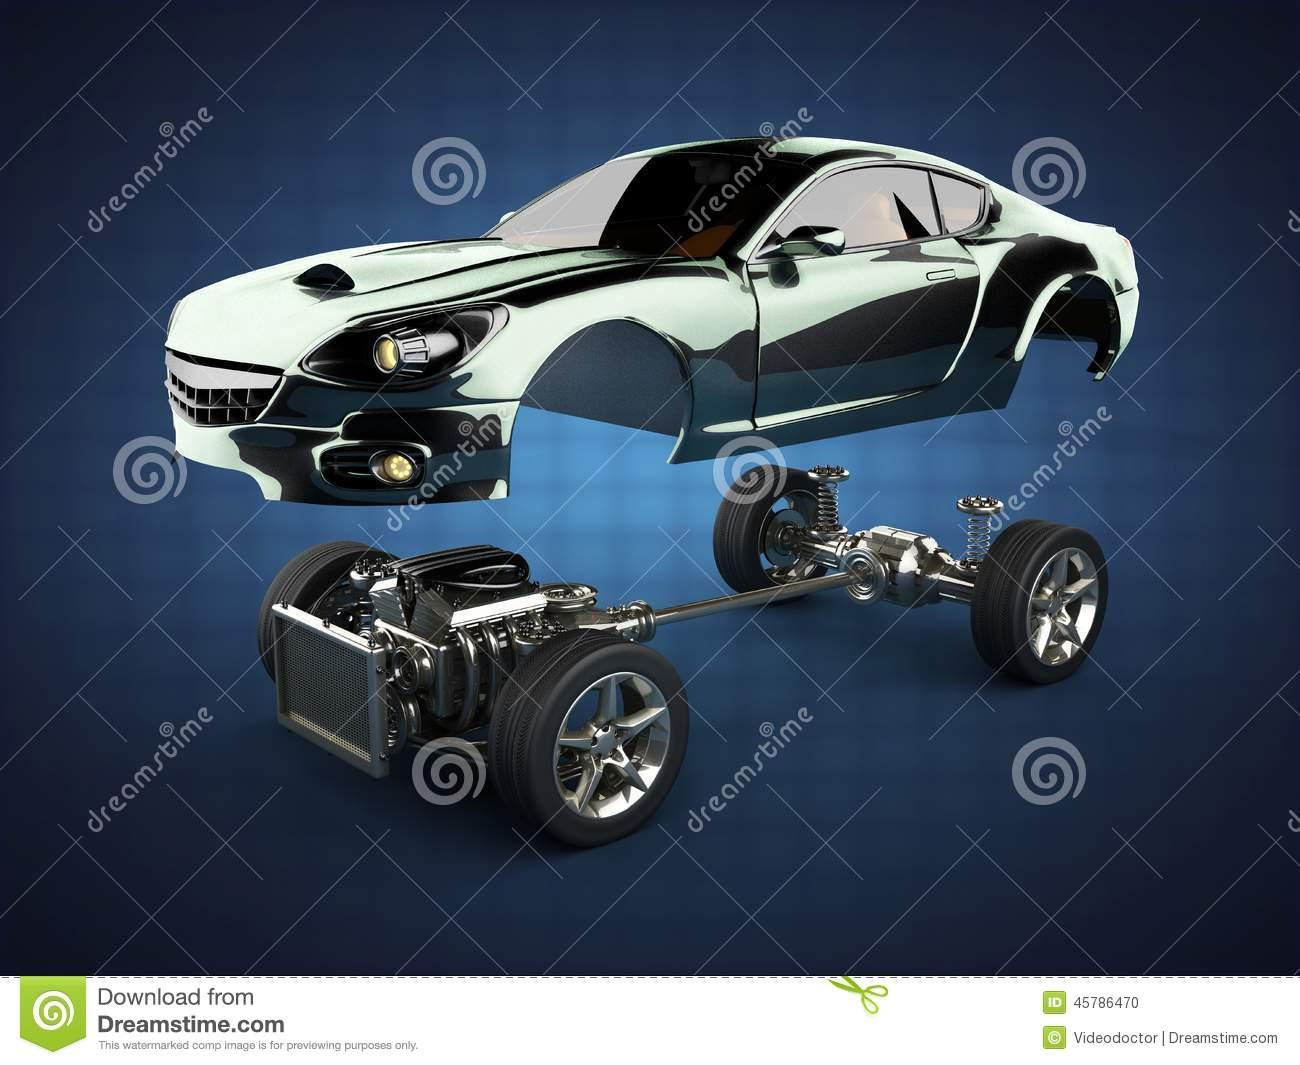 Download Car Chassis With Engine Of Luxury Brandless Sportcar Stock  Illustration   Illustration Of Body,